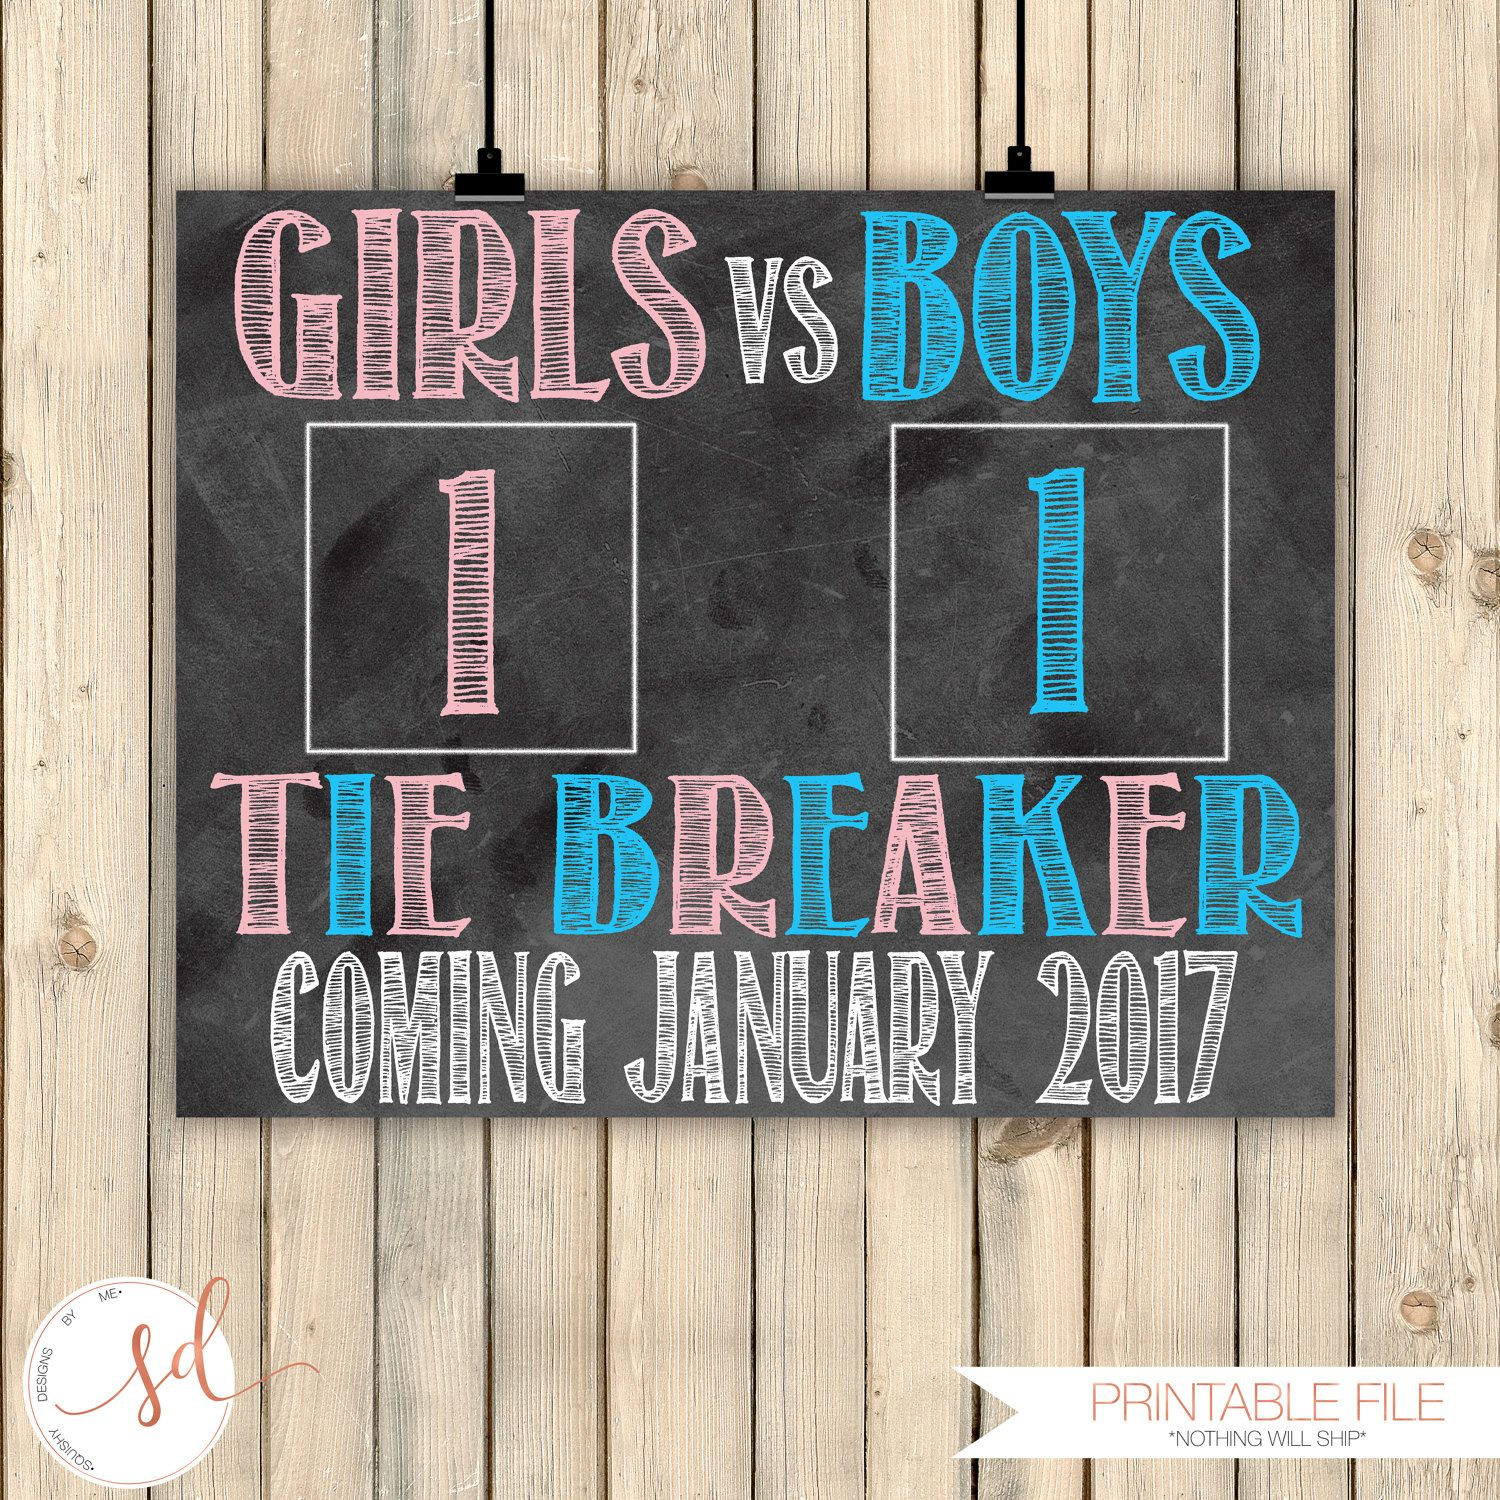 Tie Breaker Pregnancy Announcement Boys vs Girls New Baby Reveal